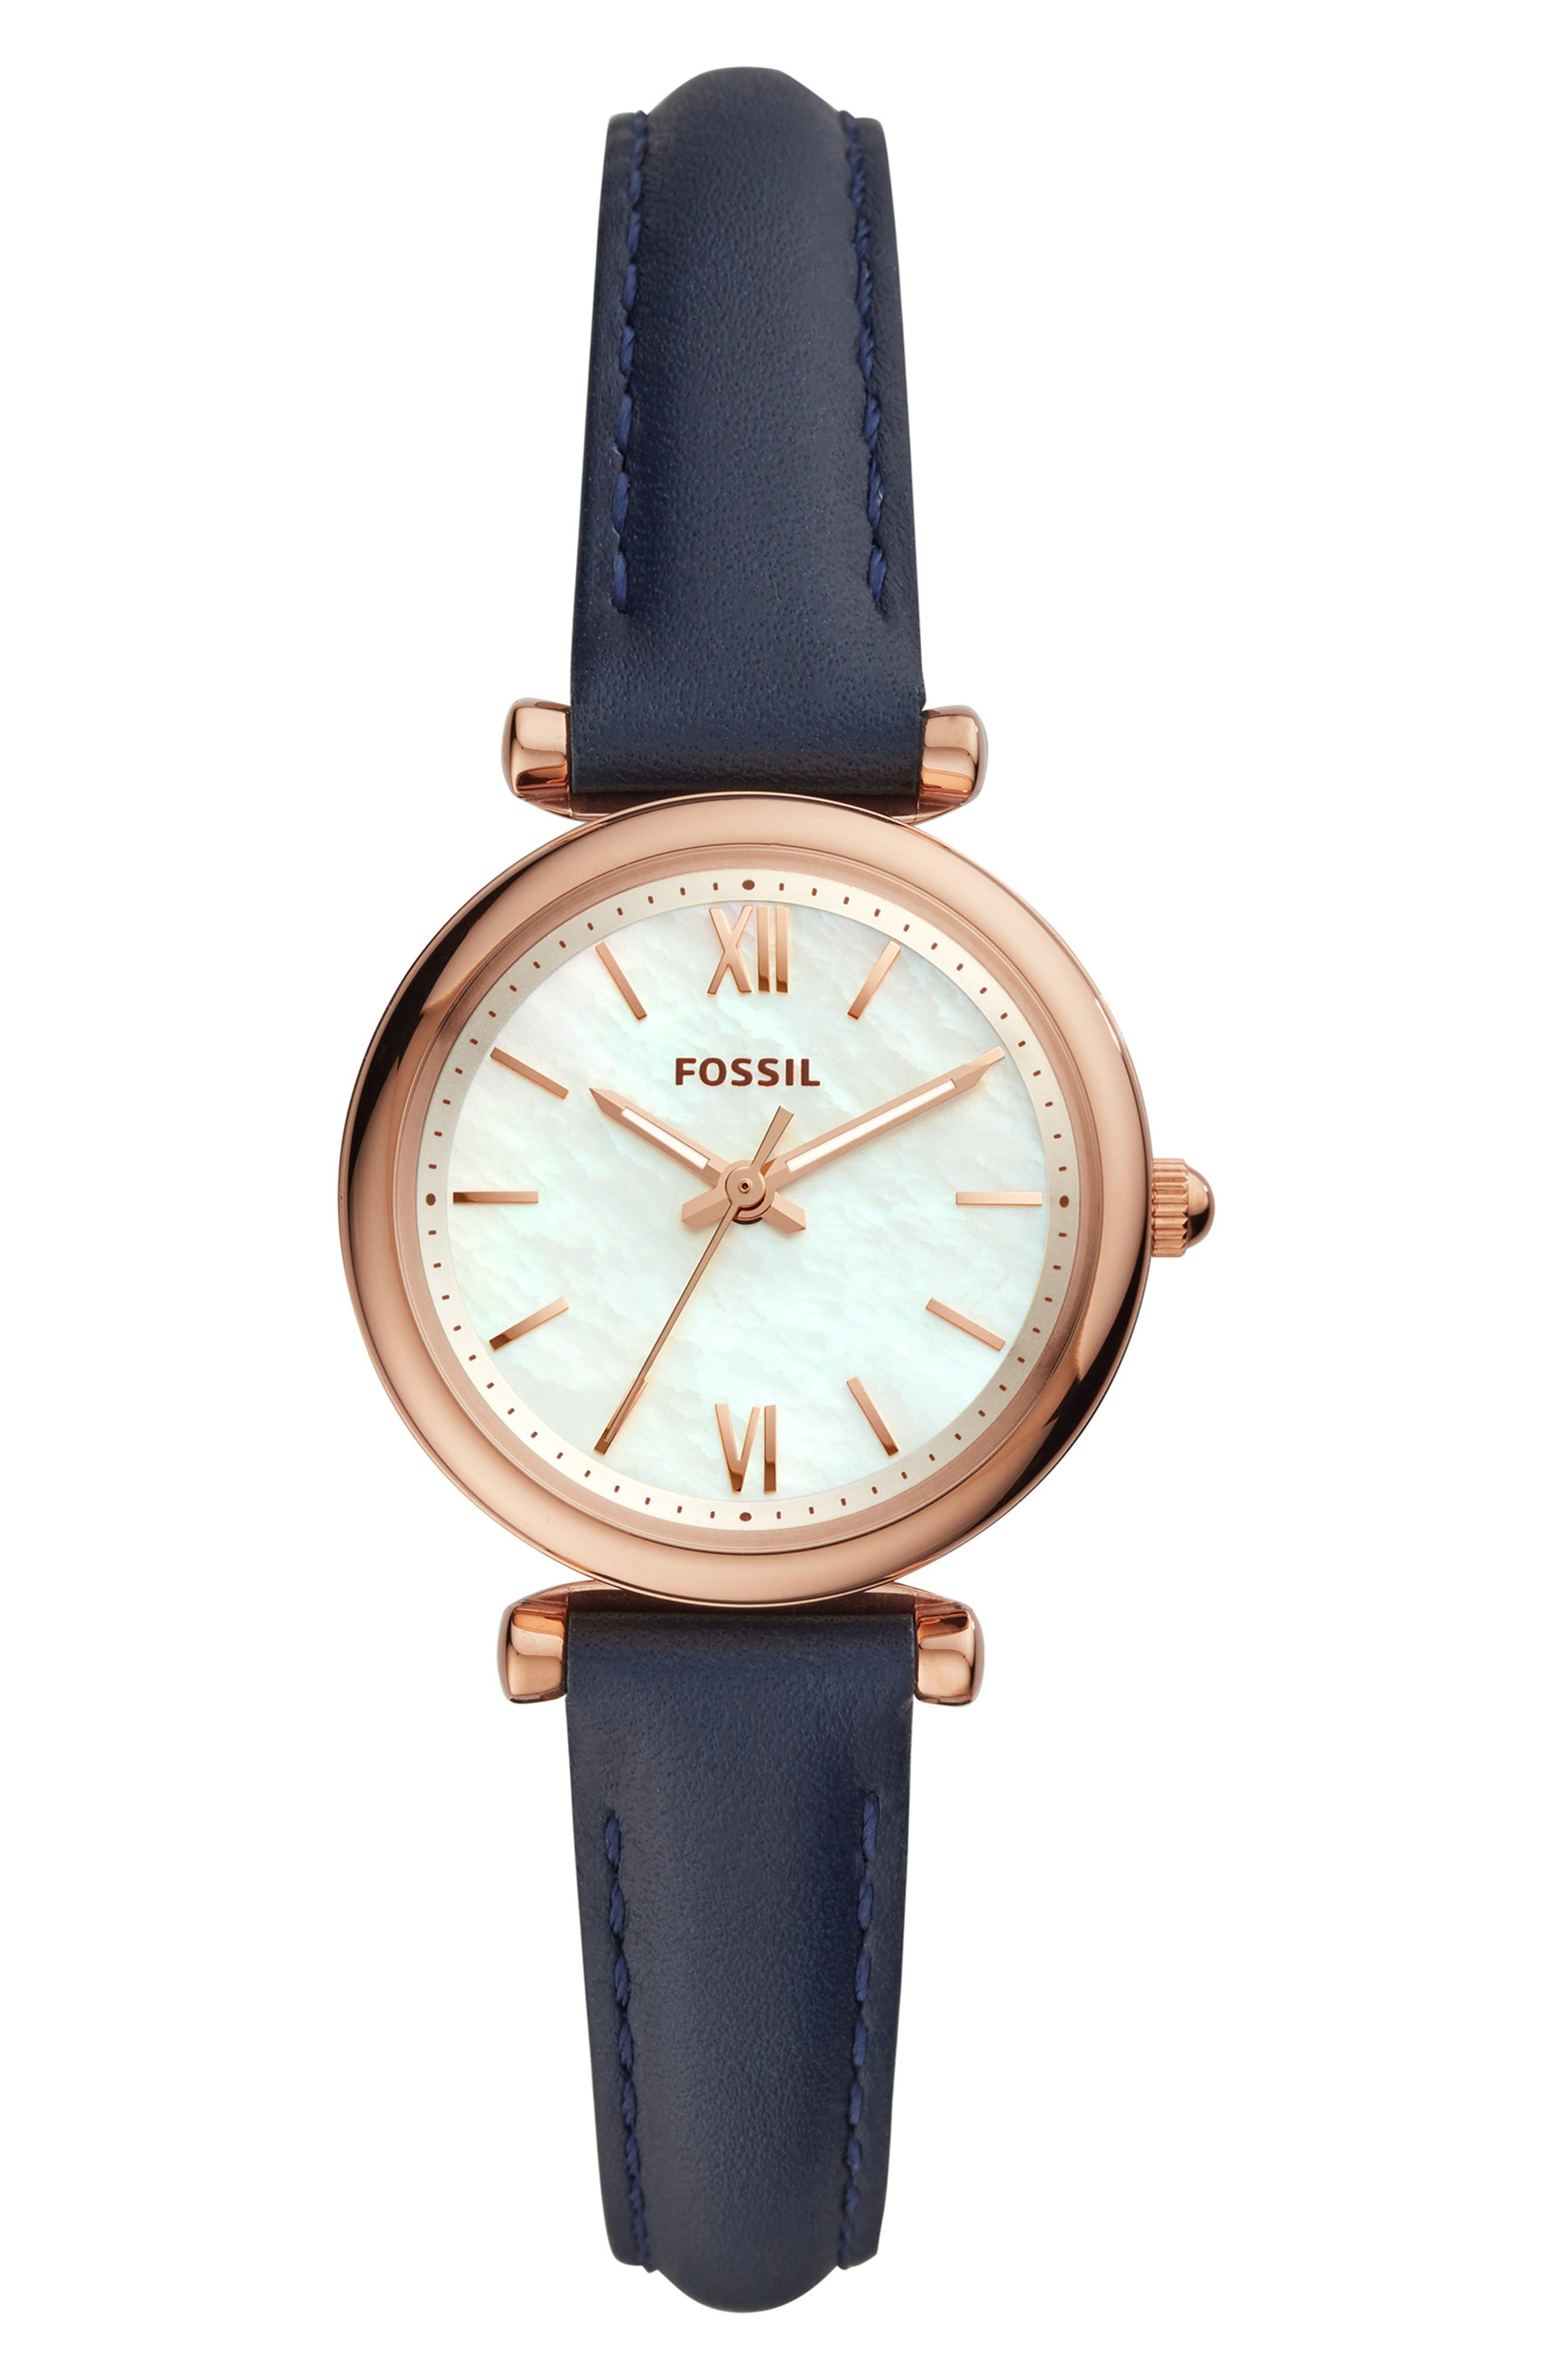 FOSSIL, Mini Carlie Star Leather Strap Watch, 28mm, Main thumbnail 1, color, NAVY/ WHITE MOP/ ROSE GOLD